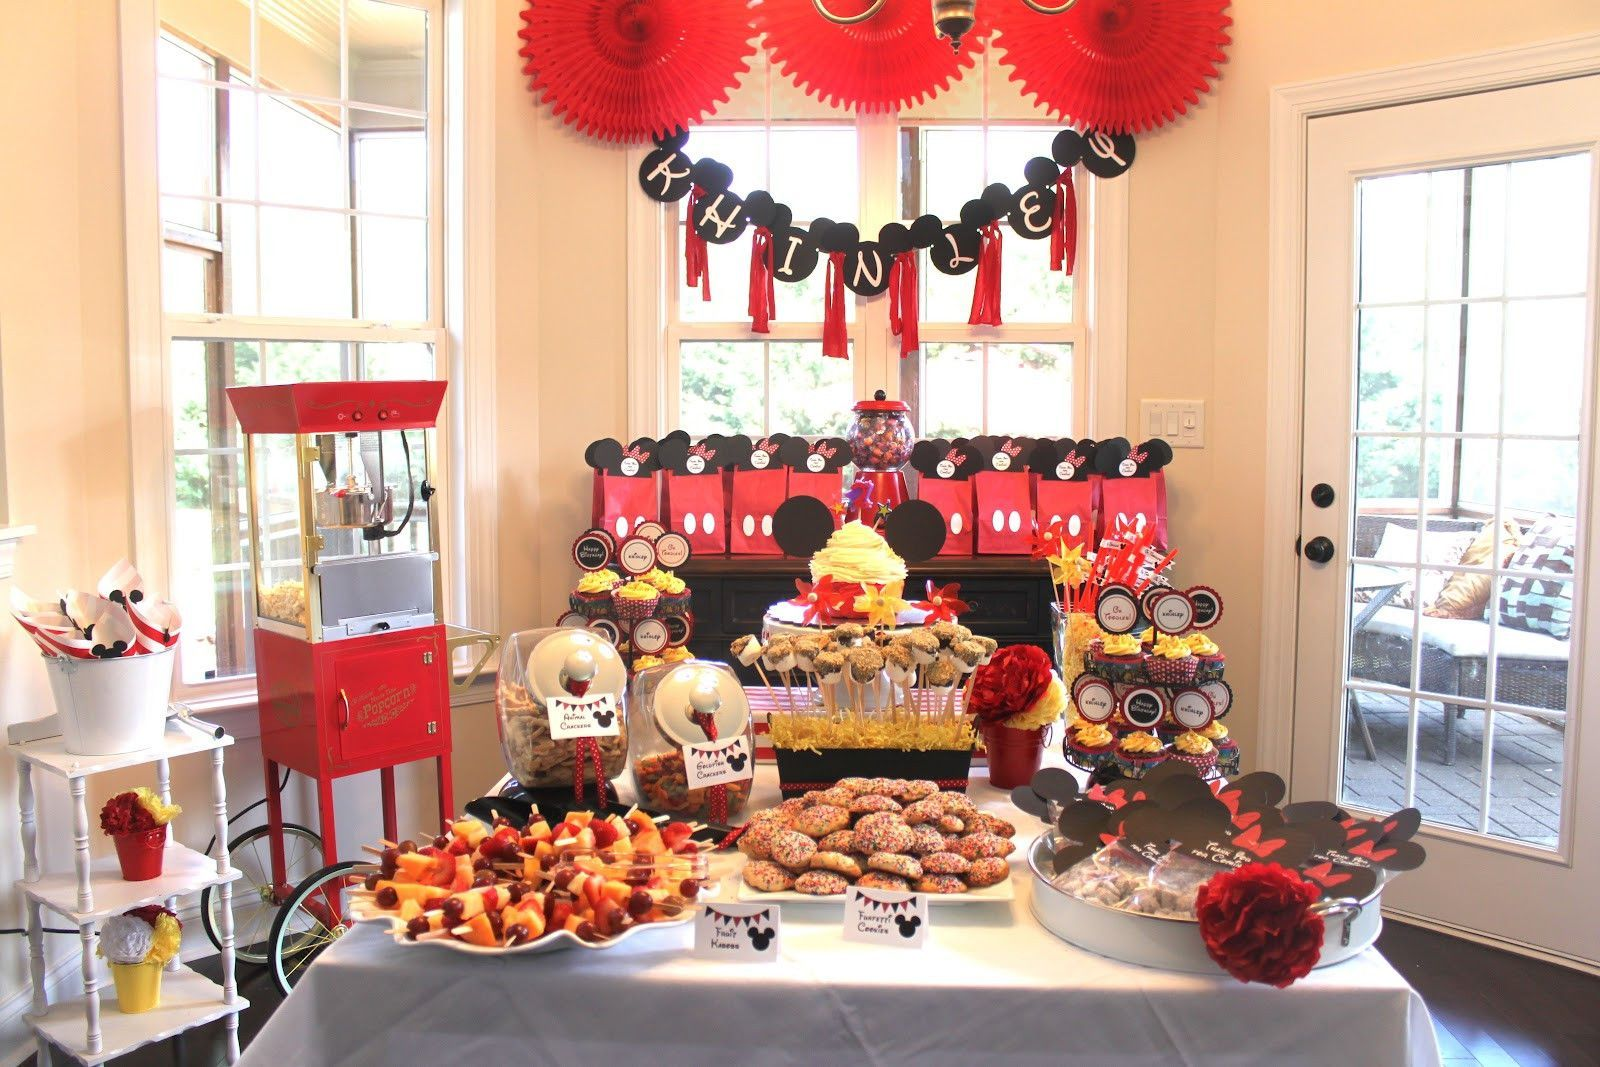 minnie mouse 2nd birthday party.20 Best Ideas 2nd Birthday Ideas #mickeymousebirthdaypartyideas1st minnie mouse 2nd birthday party.20 Best Ideas 2nd Birthday Ideas #mickeymousebirthdaypartyideas1st